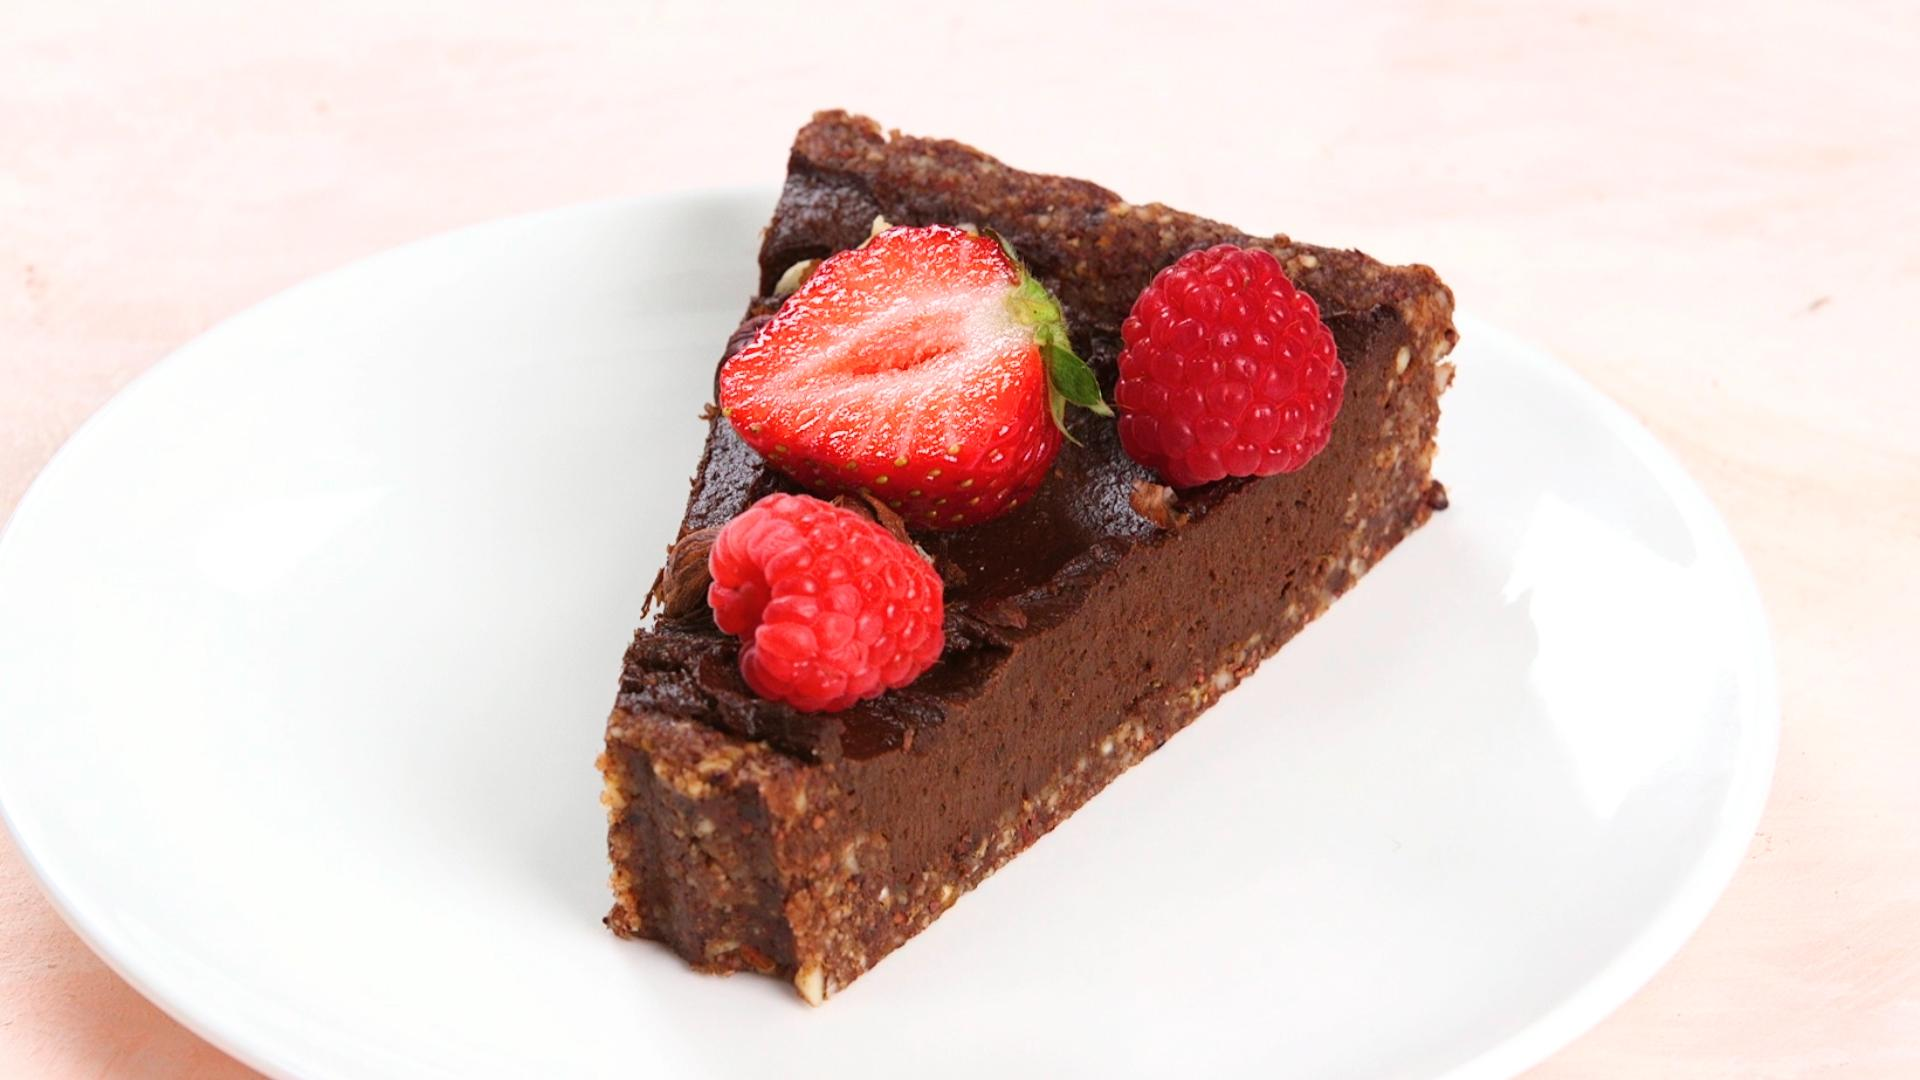 Vegan Chocolate-Hazelnut Tart with Fresh Berries